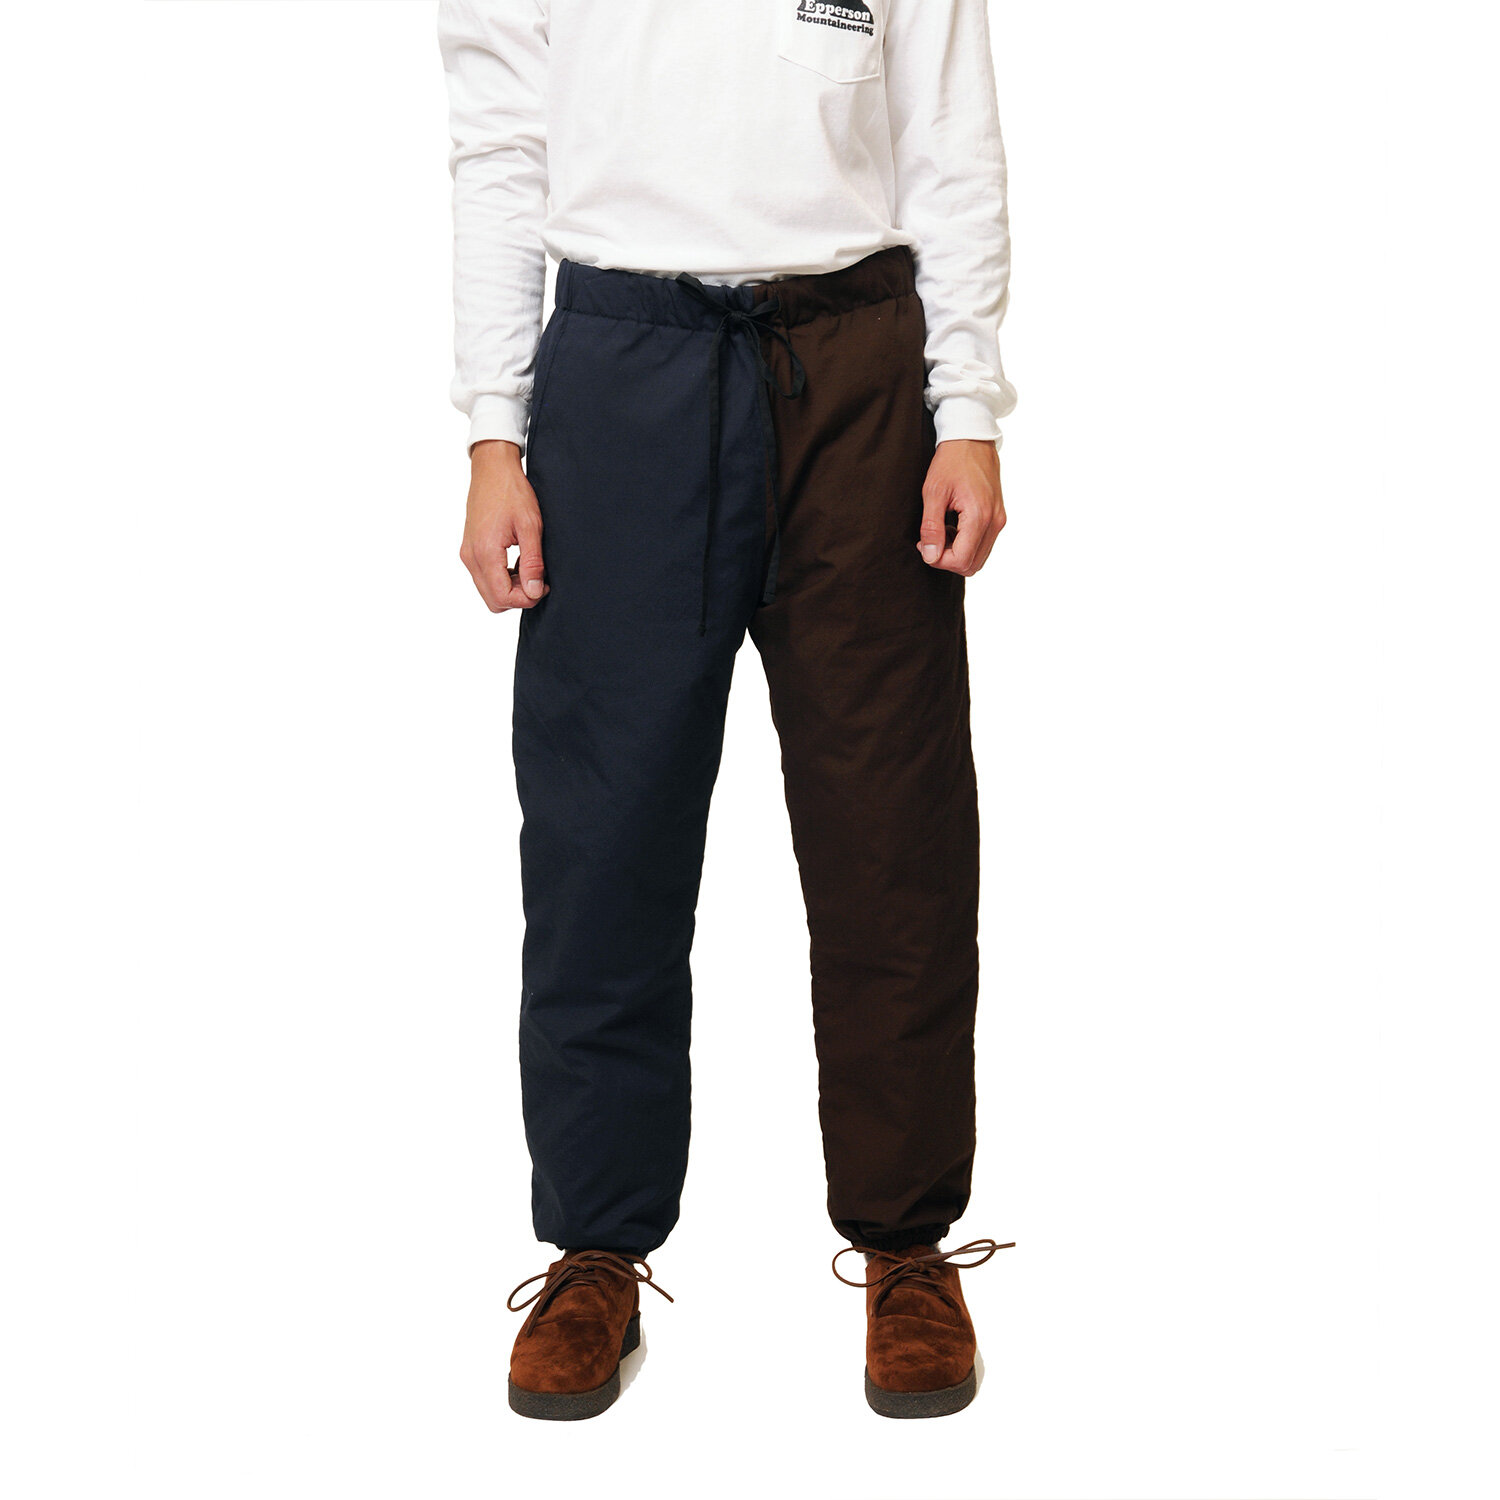 4-Insulated-Pants,-Navy-Brown,-Fitting.jpg